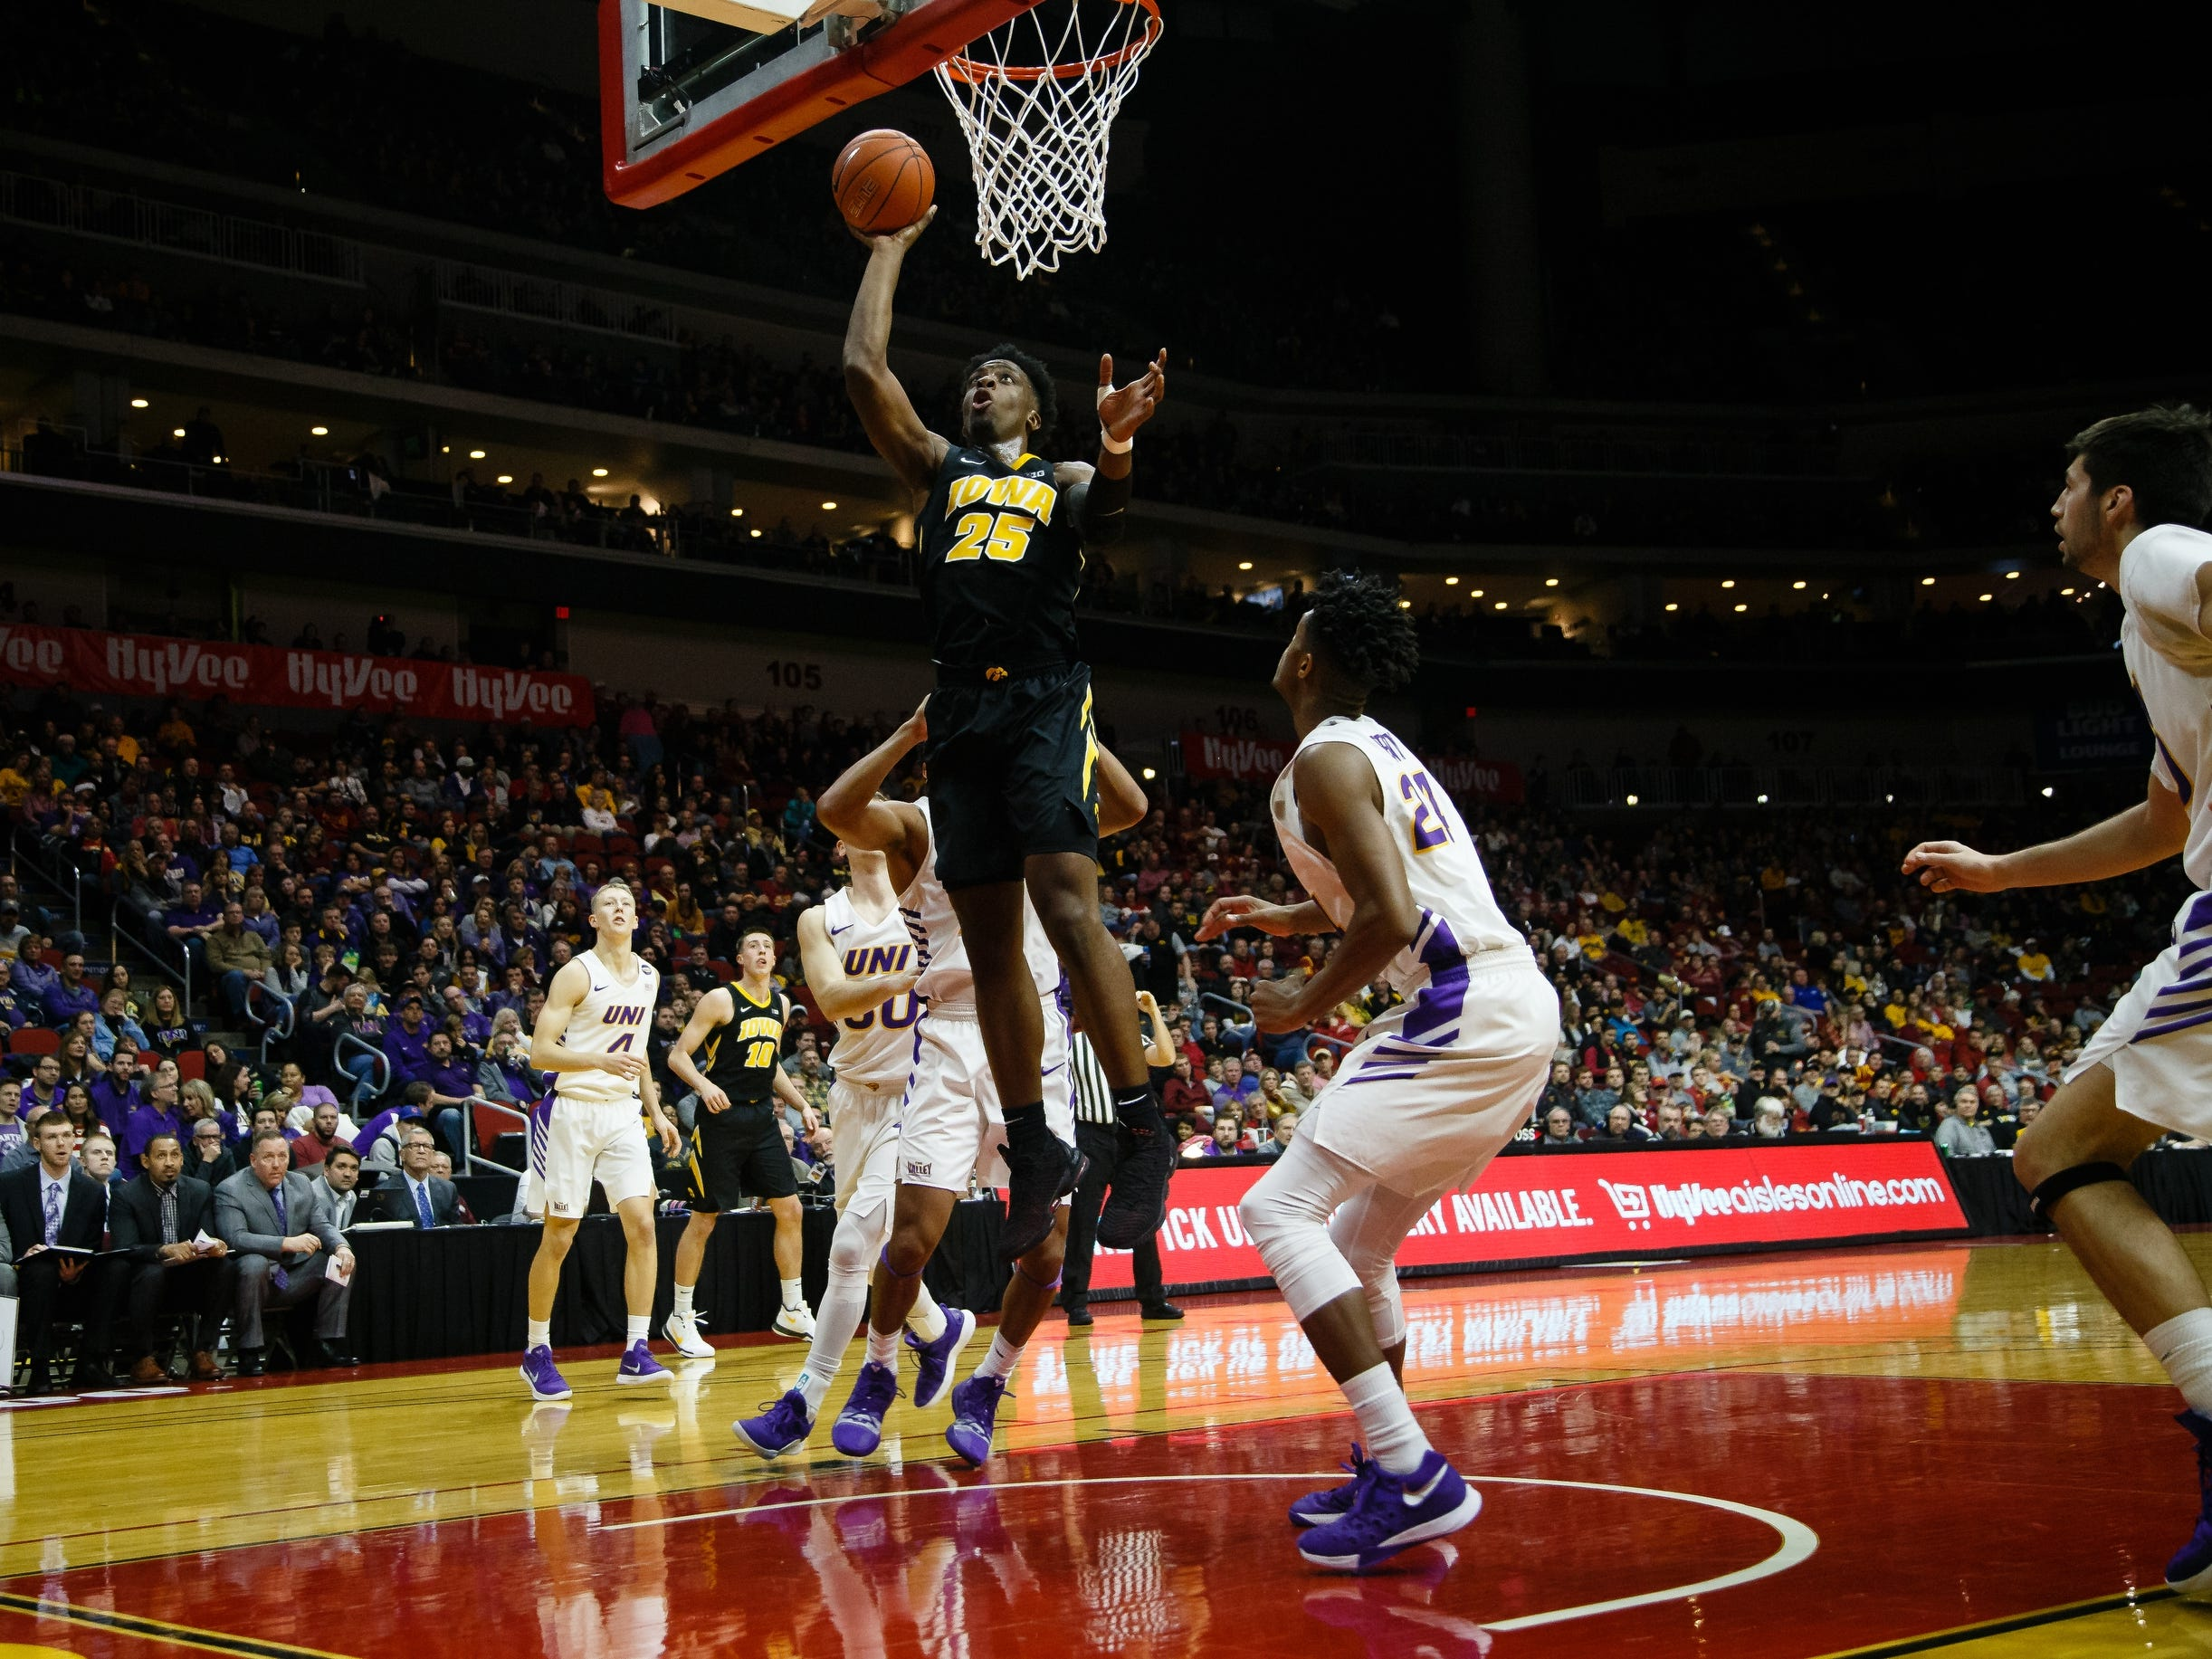 Iowa's Tyler Cook (25) shoots during their basketball game at the Hy-Vee Classic on Saturday, Dec. 15, 2018, in Des Moines. Iowa takes a 39-18 lead over UNI into halftime.